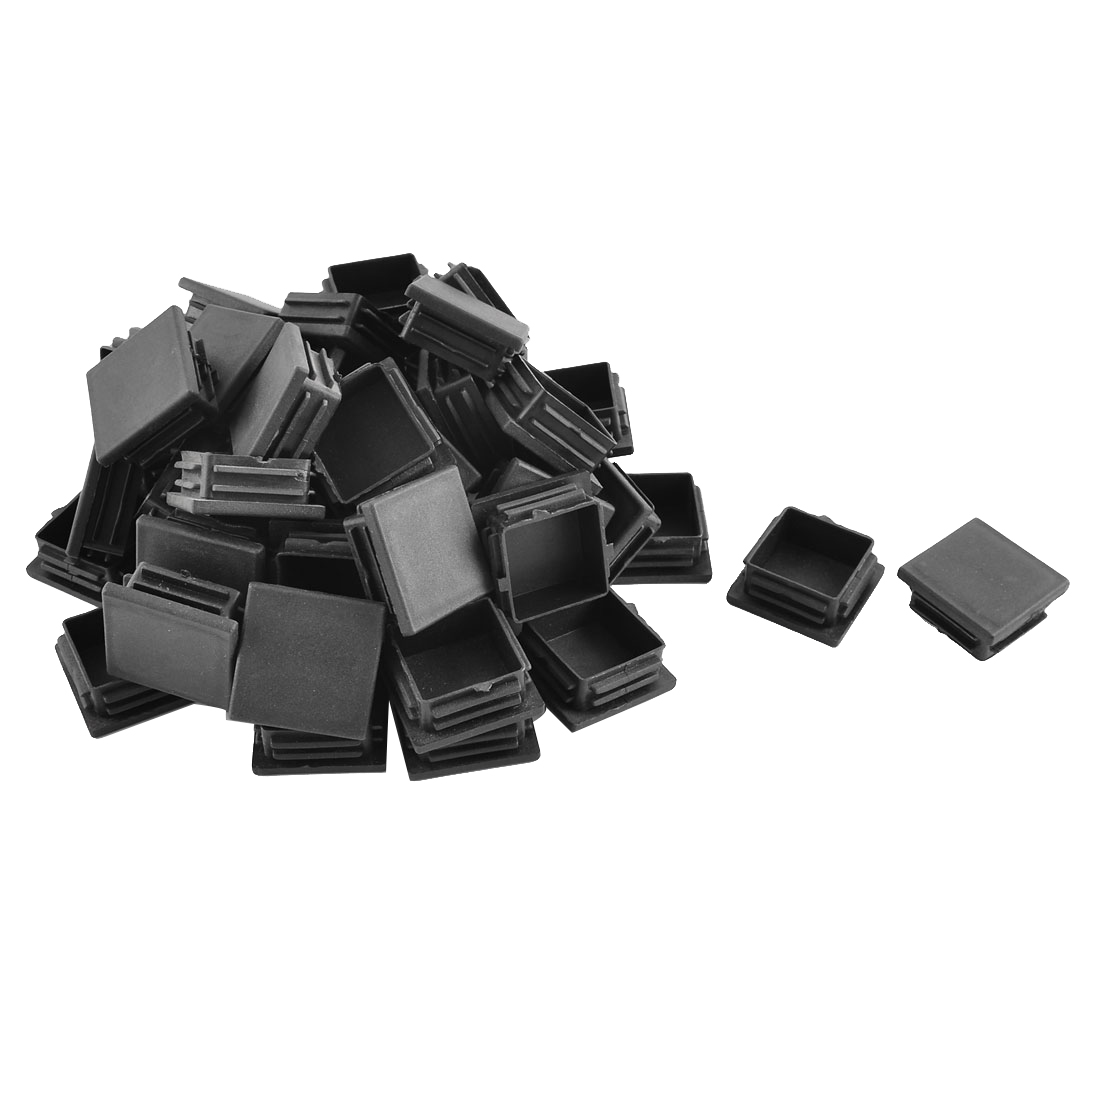 Plastic Square Blanking End Caps Tubing Tube Inserts Black 38mm x 38mm 50pcs